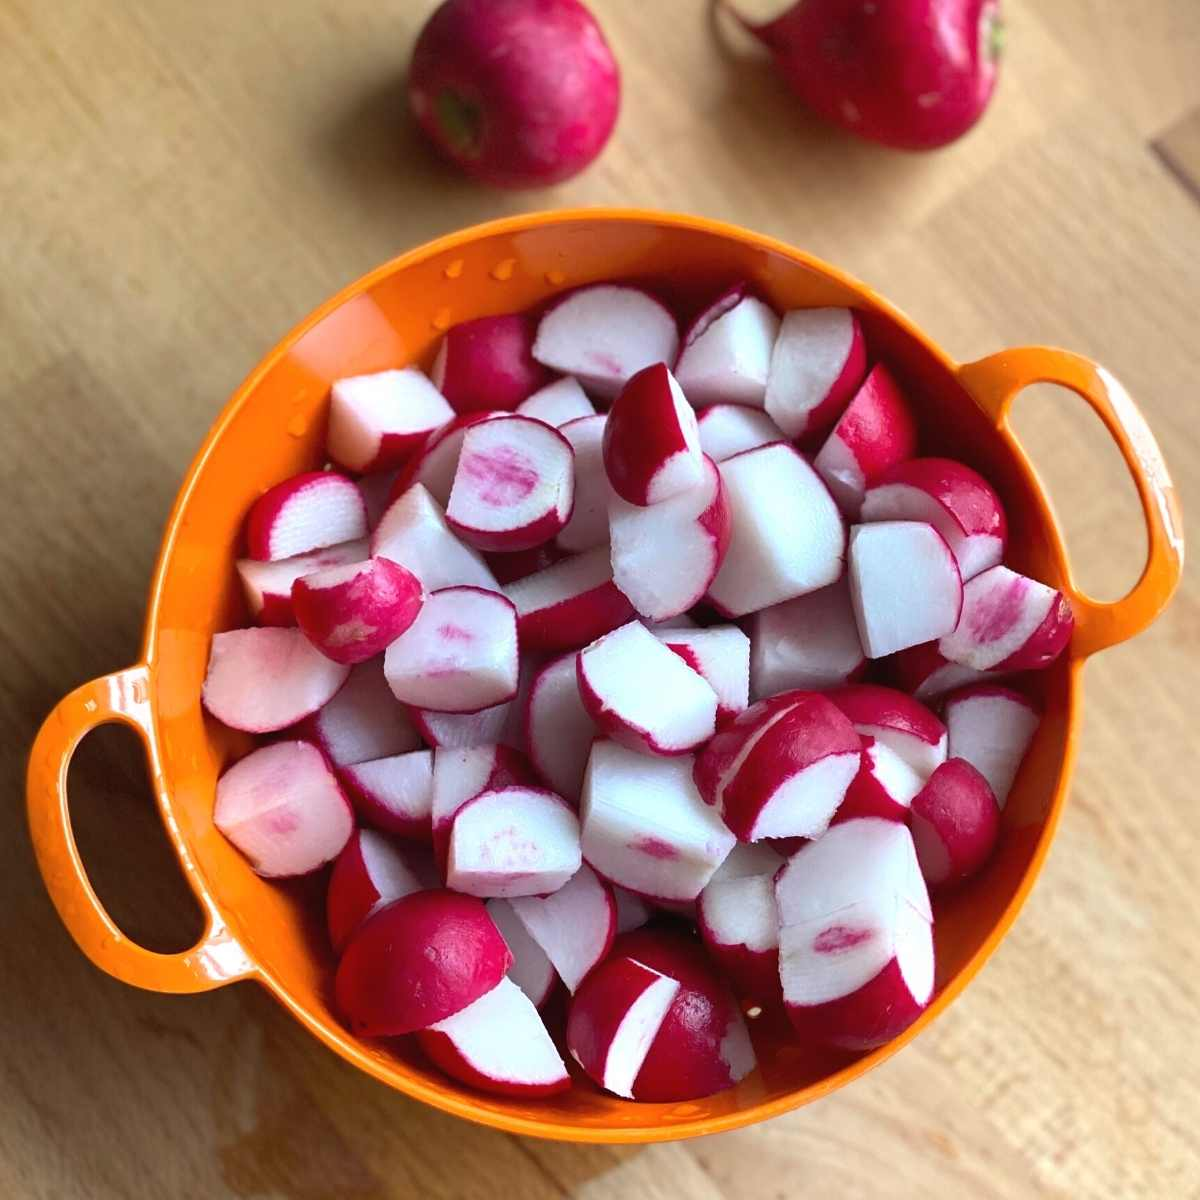 Diced radishes in a bowl.